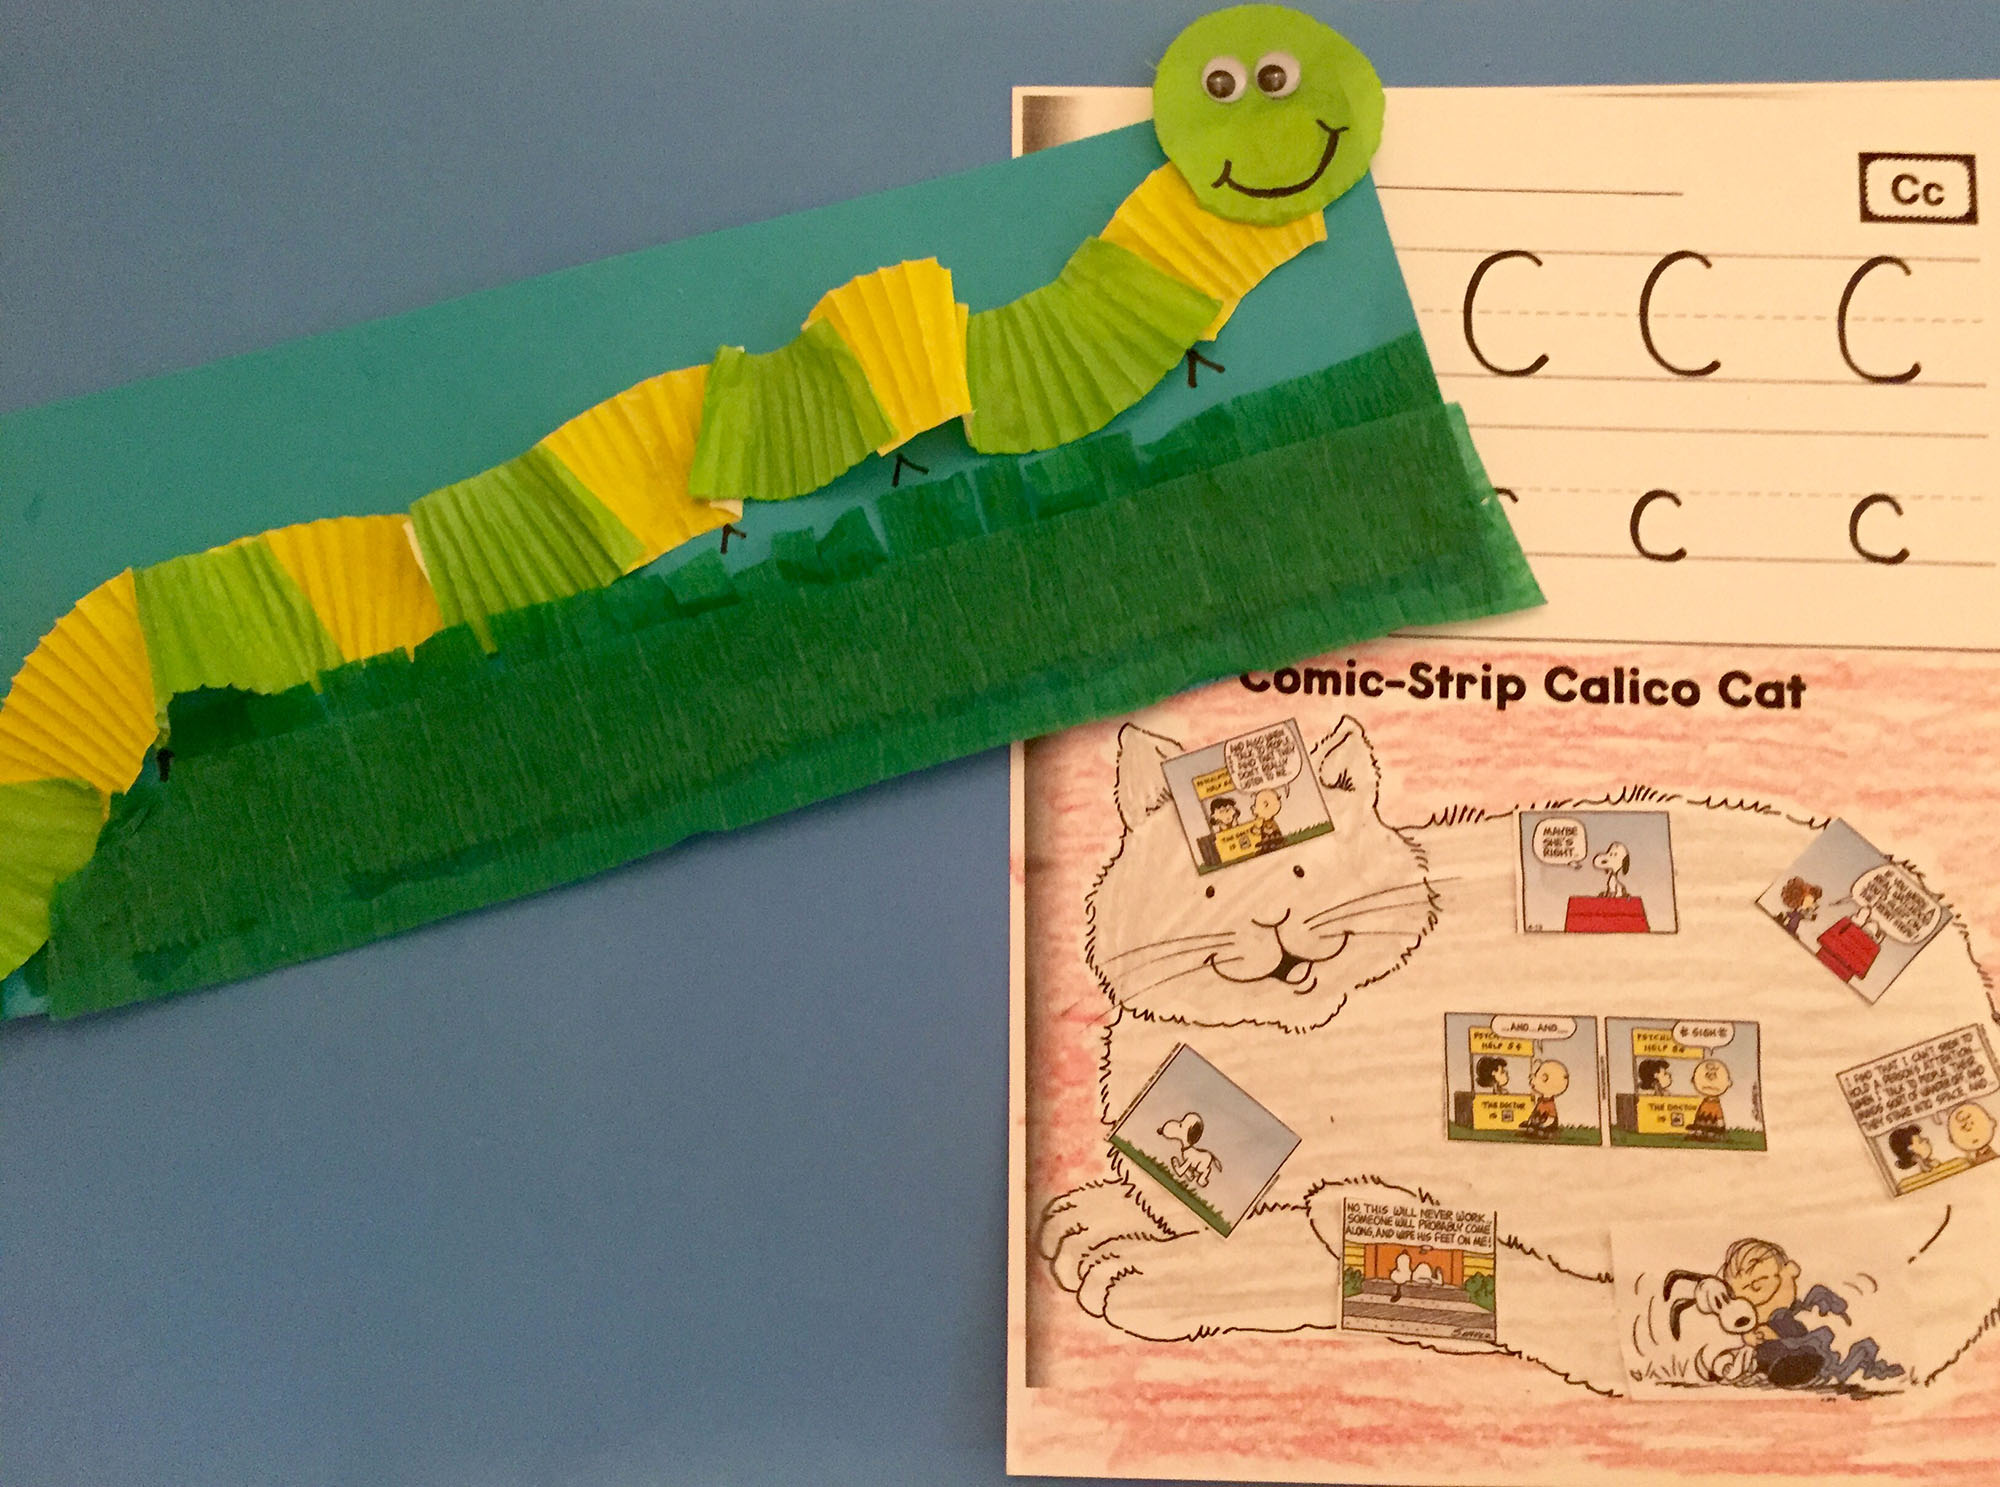 Cupcake-Liner Caterpillar and Comic-Strip Calico Cat